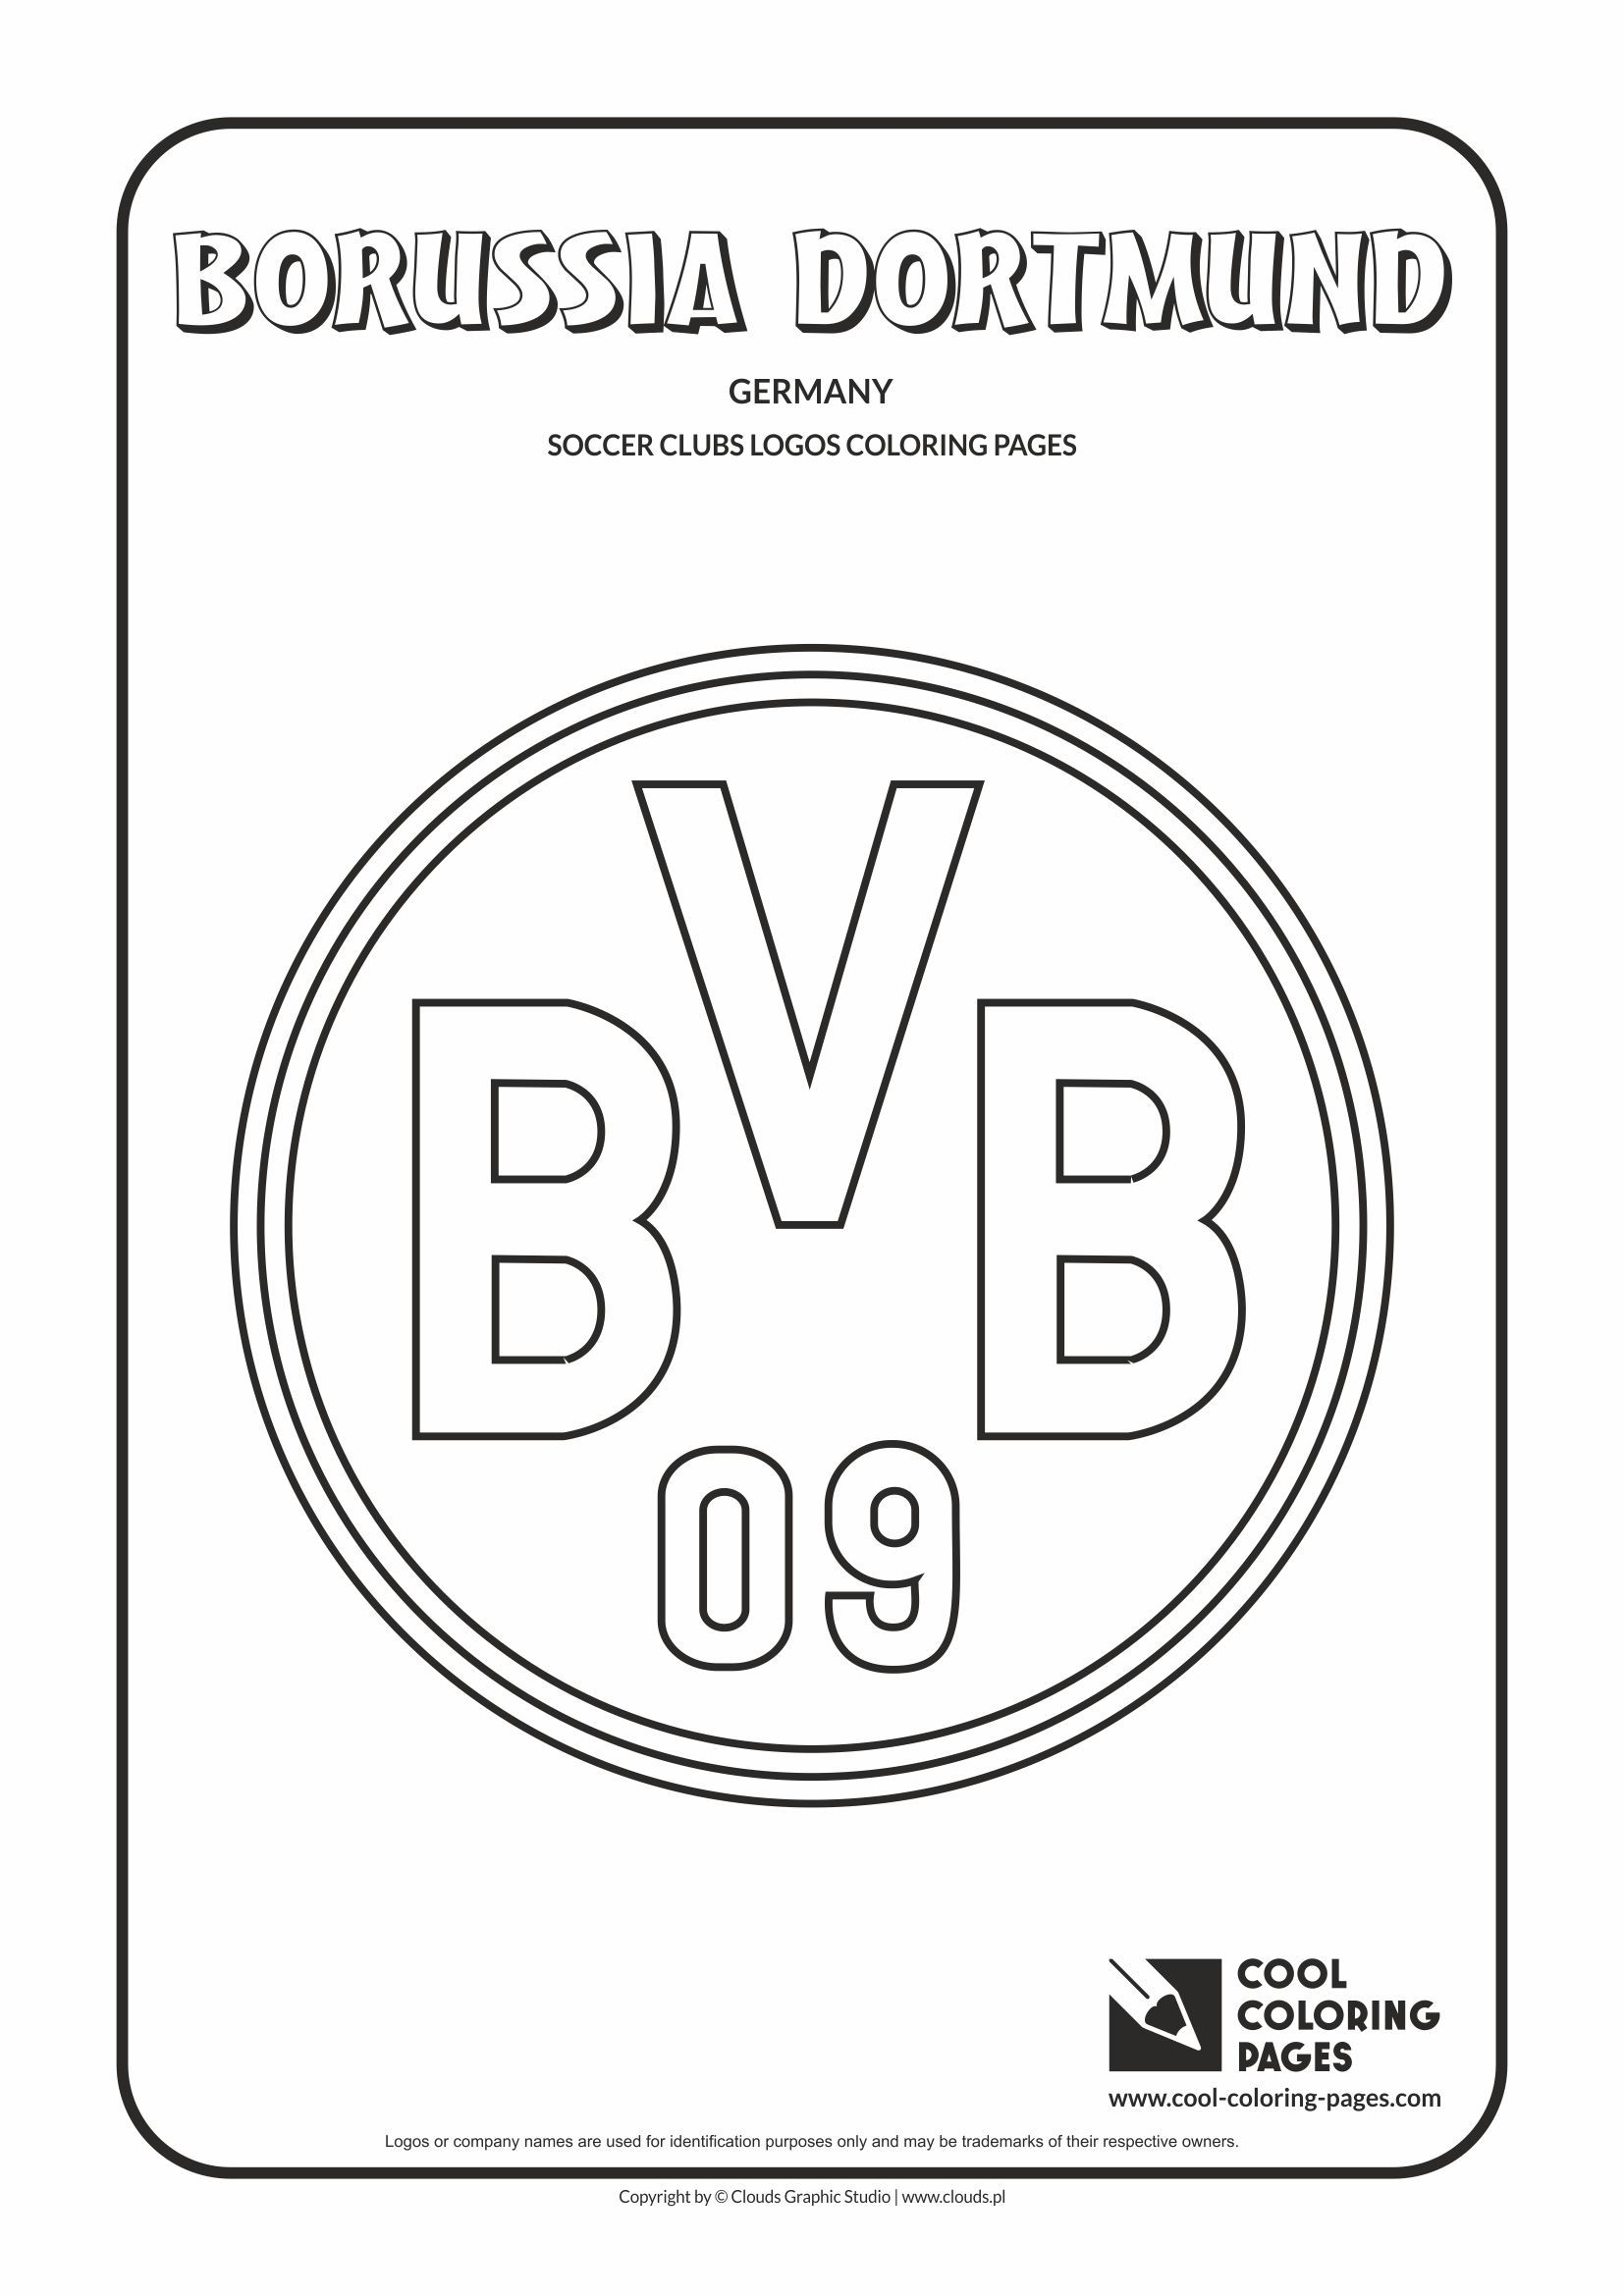 Cool Coloring Pages Soccer Clubs